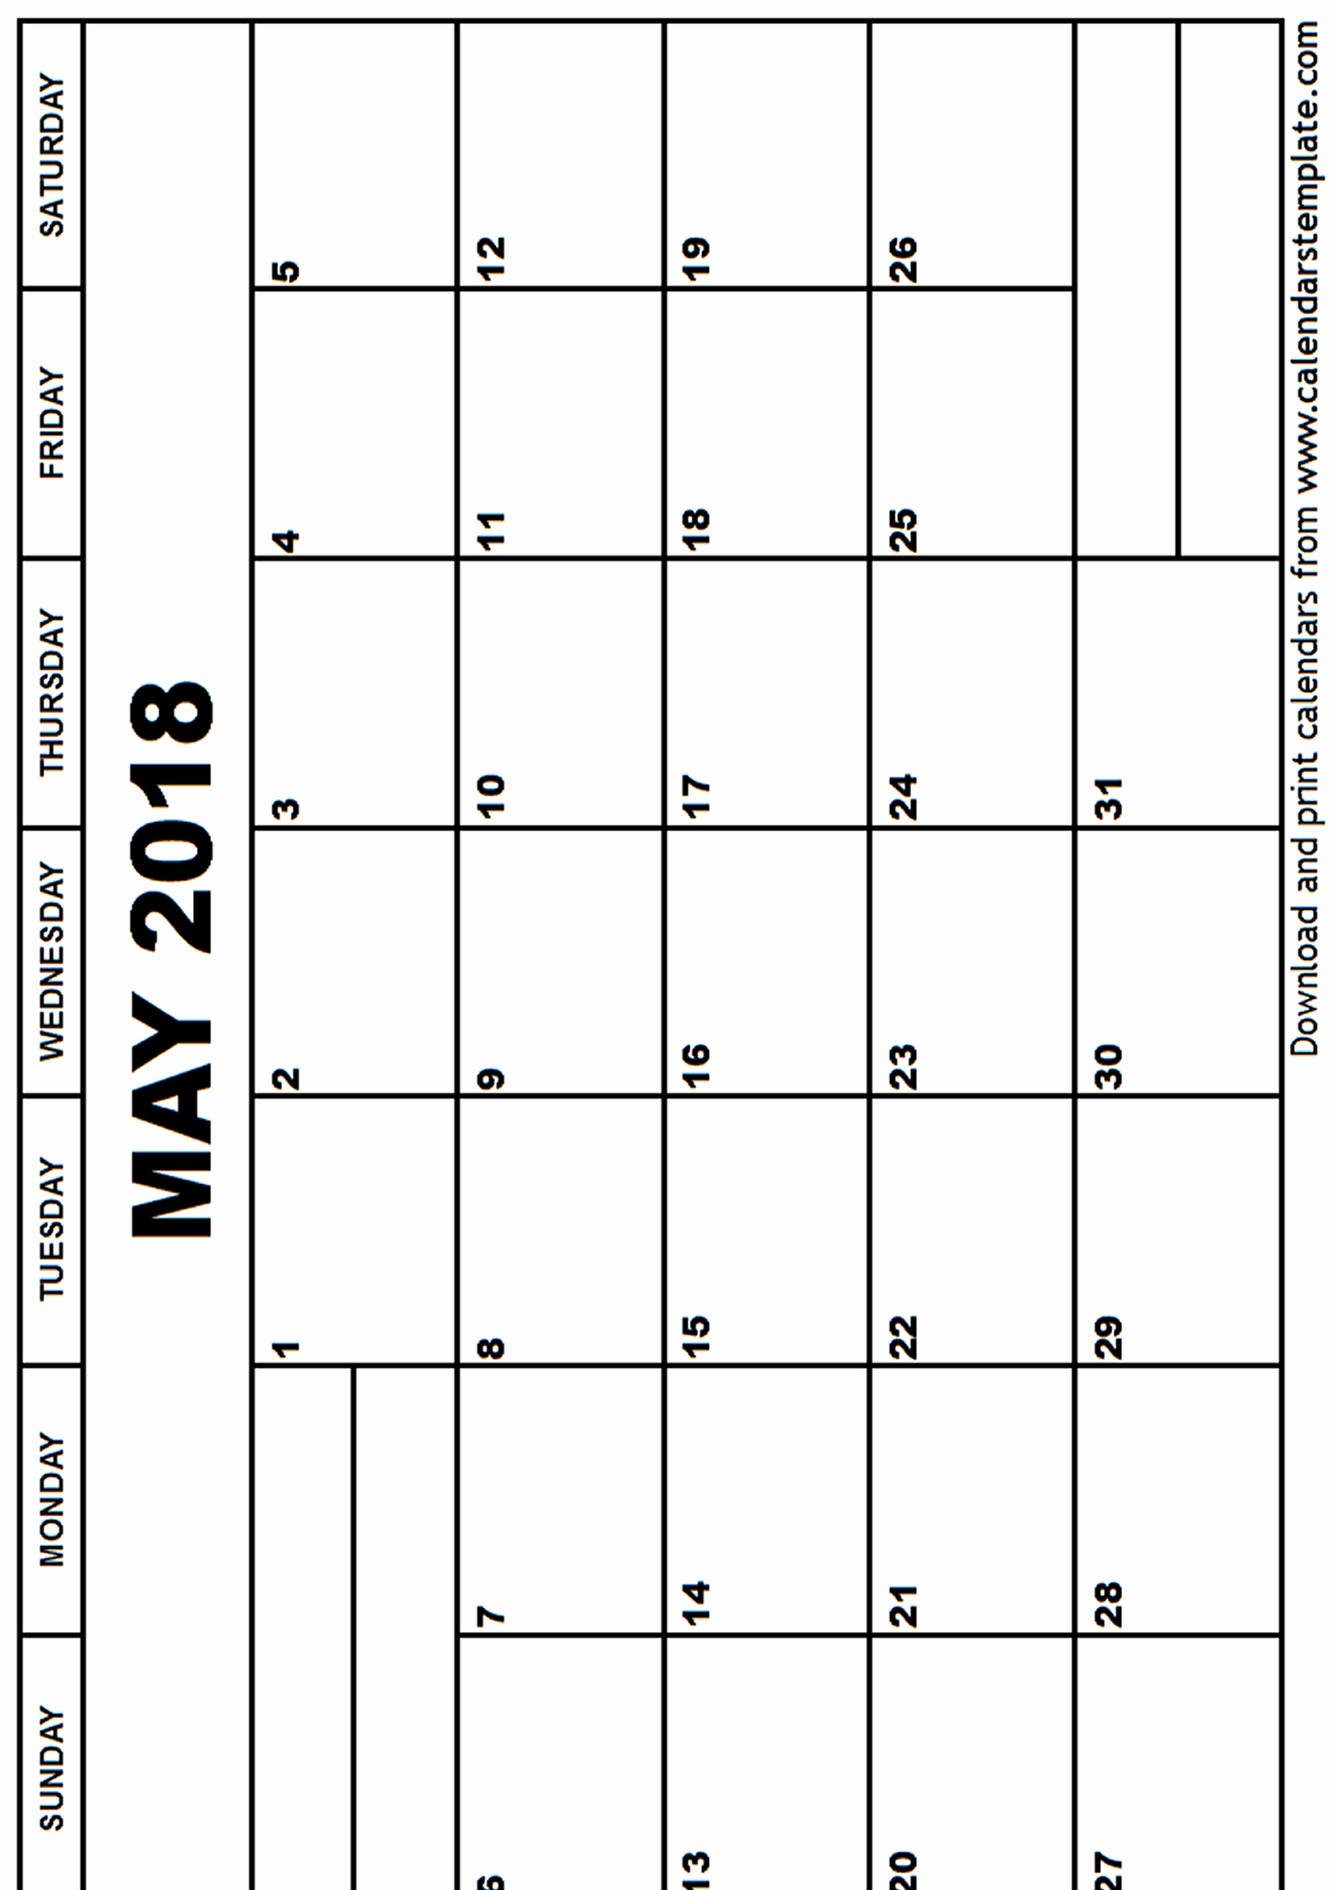 Free May 2018 Calendar Template New May 2018 Calendar Template